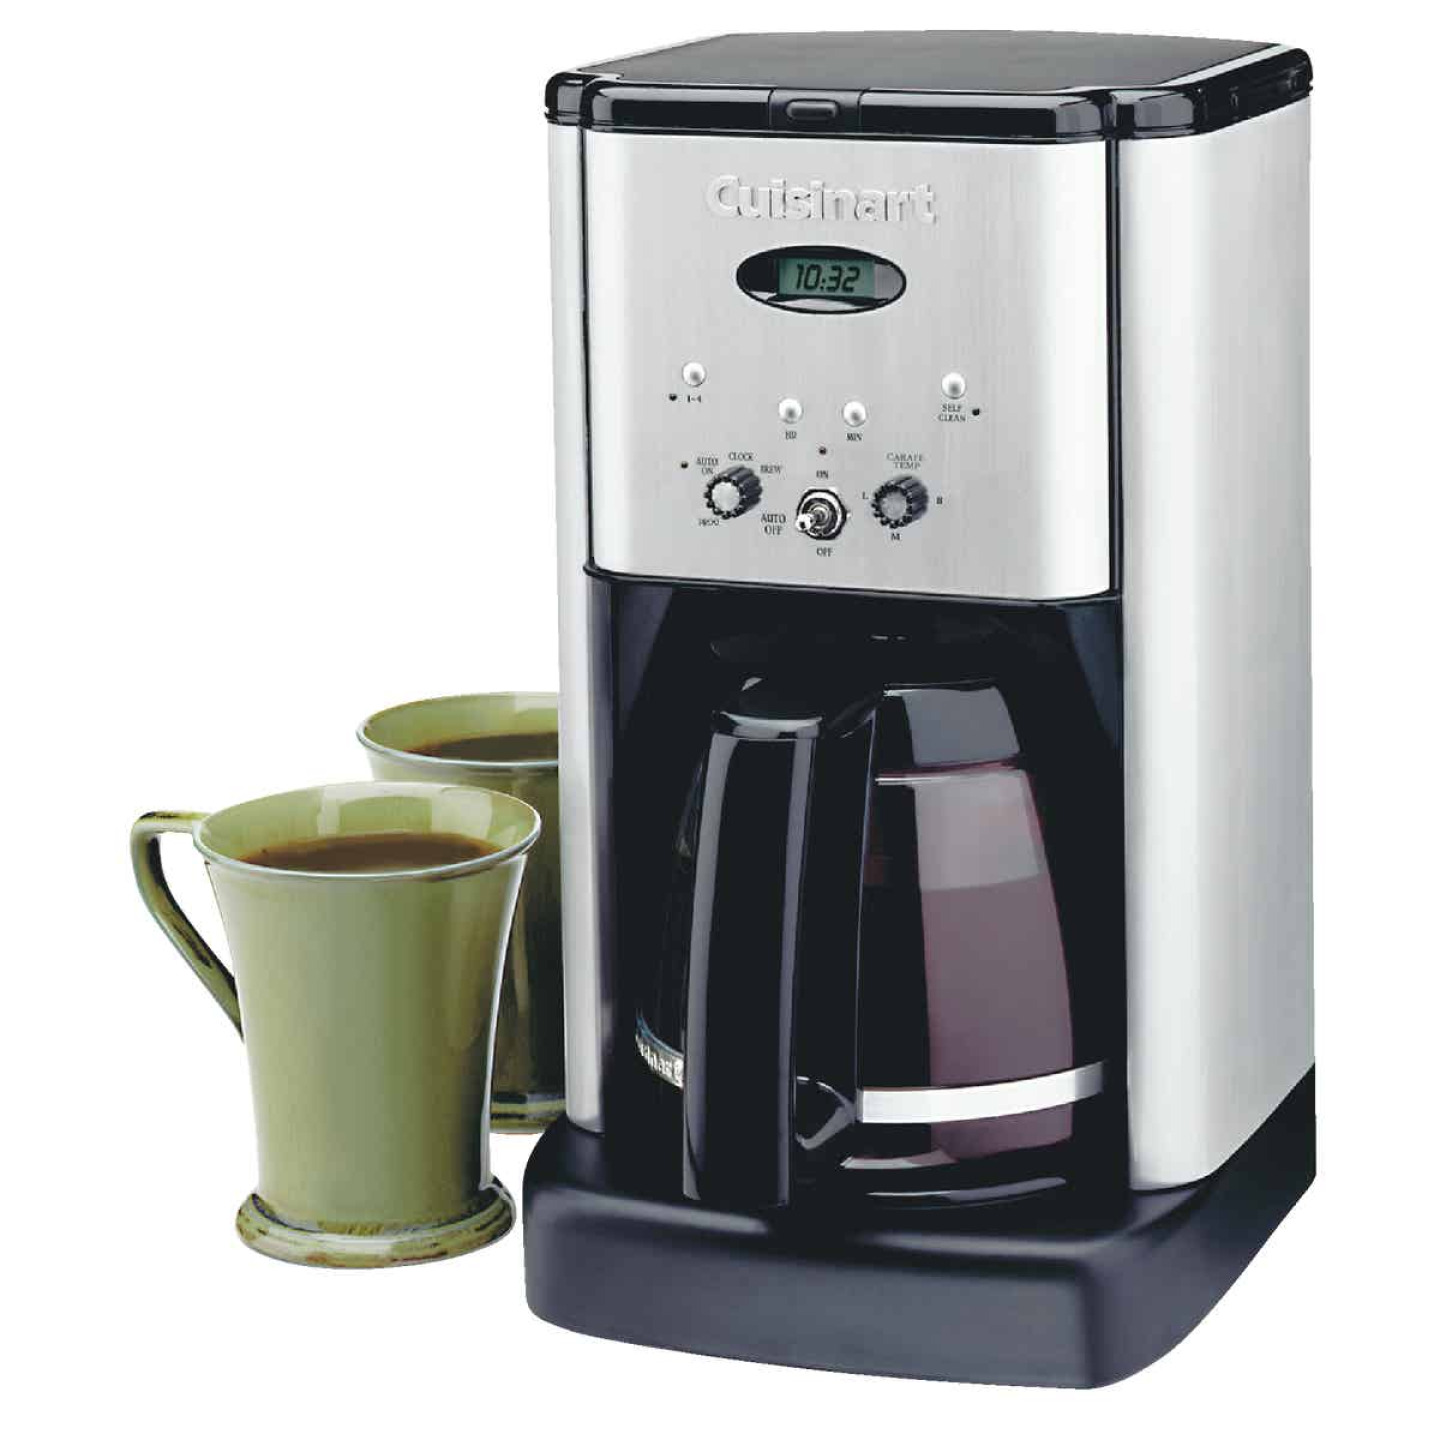 Cuisinart 12 Cup Programmable Stainless Steel Coffee Maker Image 2